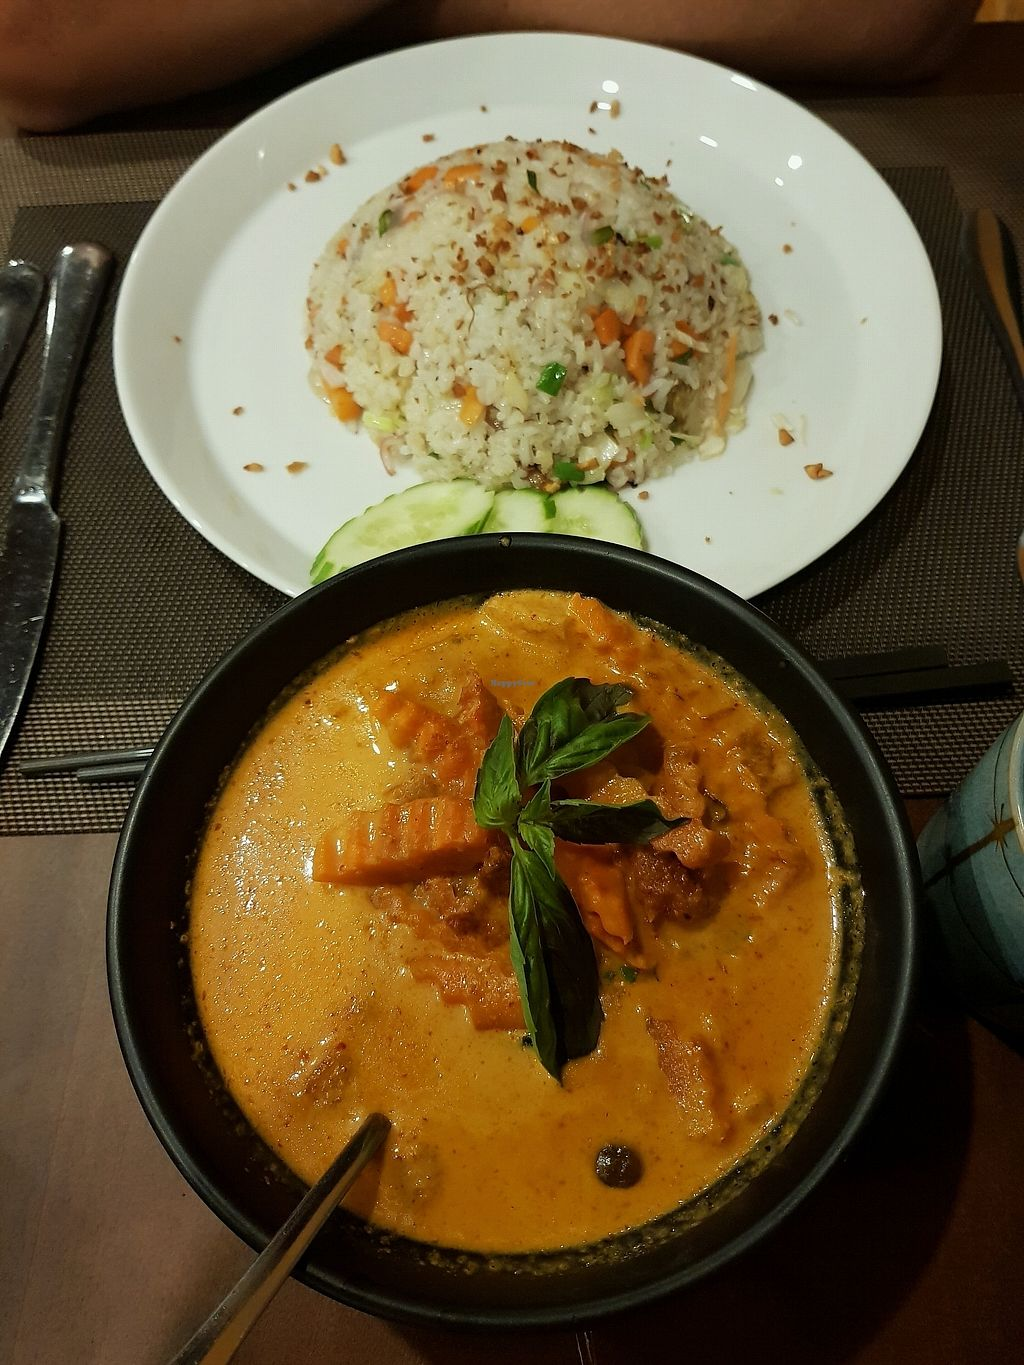 "Photo of Sala Thai  by <a href=""/members/profile/Cathy2001"">Cathy2001</a> <br/>red curry <br/> March 28, 2018  - <a href='/contact/abuse/image/108254/377350'>Report</a>"